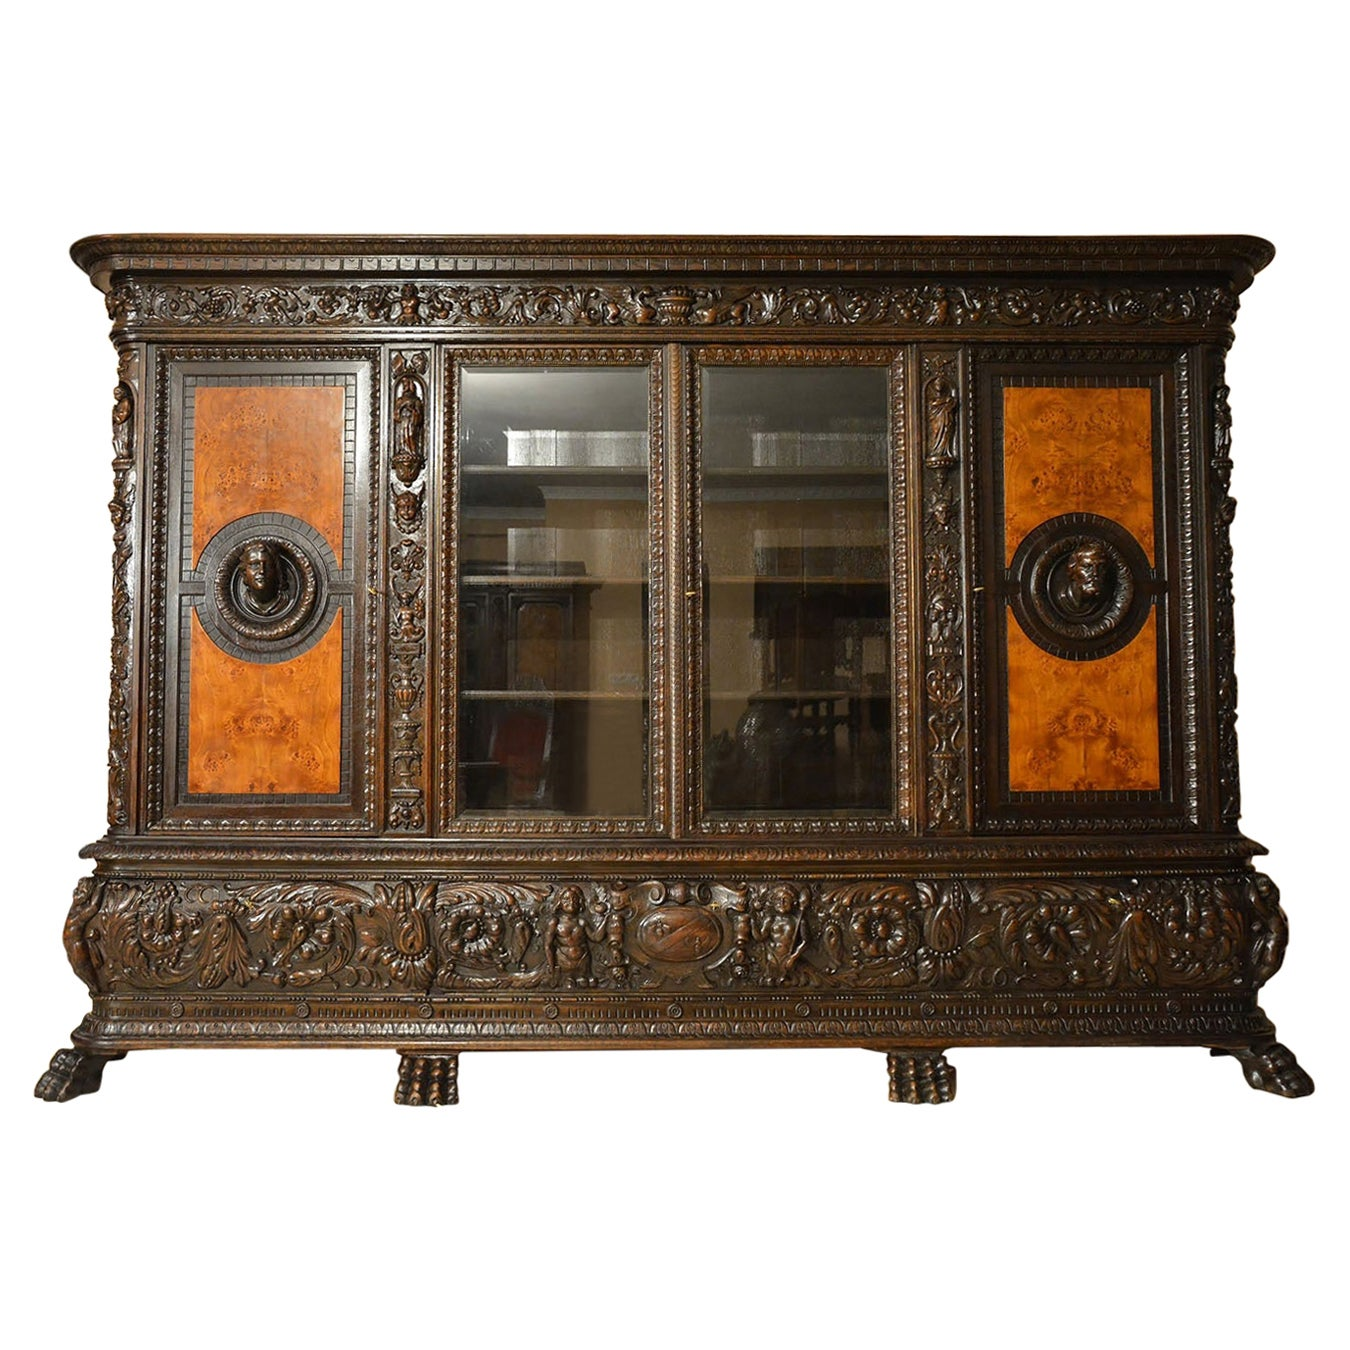 Renaissance Revival Style Oak Bookcase with Drink Bar Beginning of 20th Century